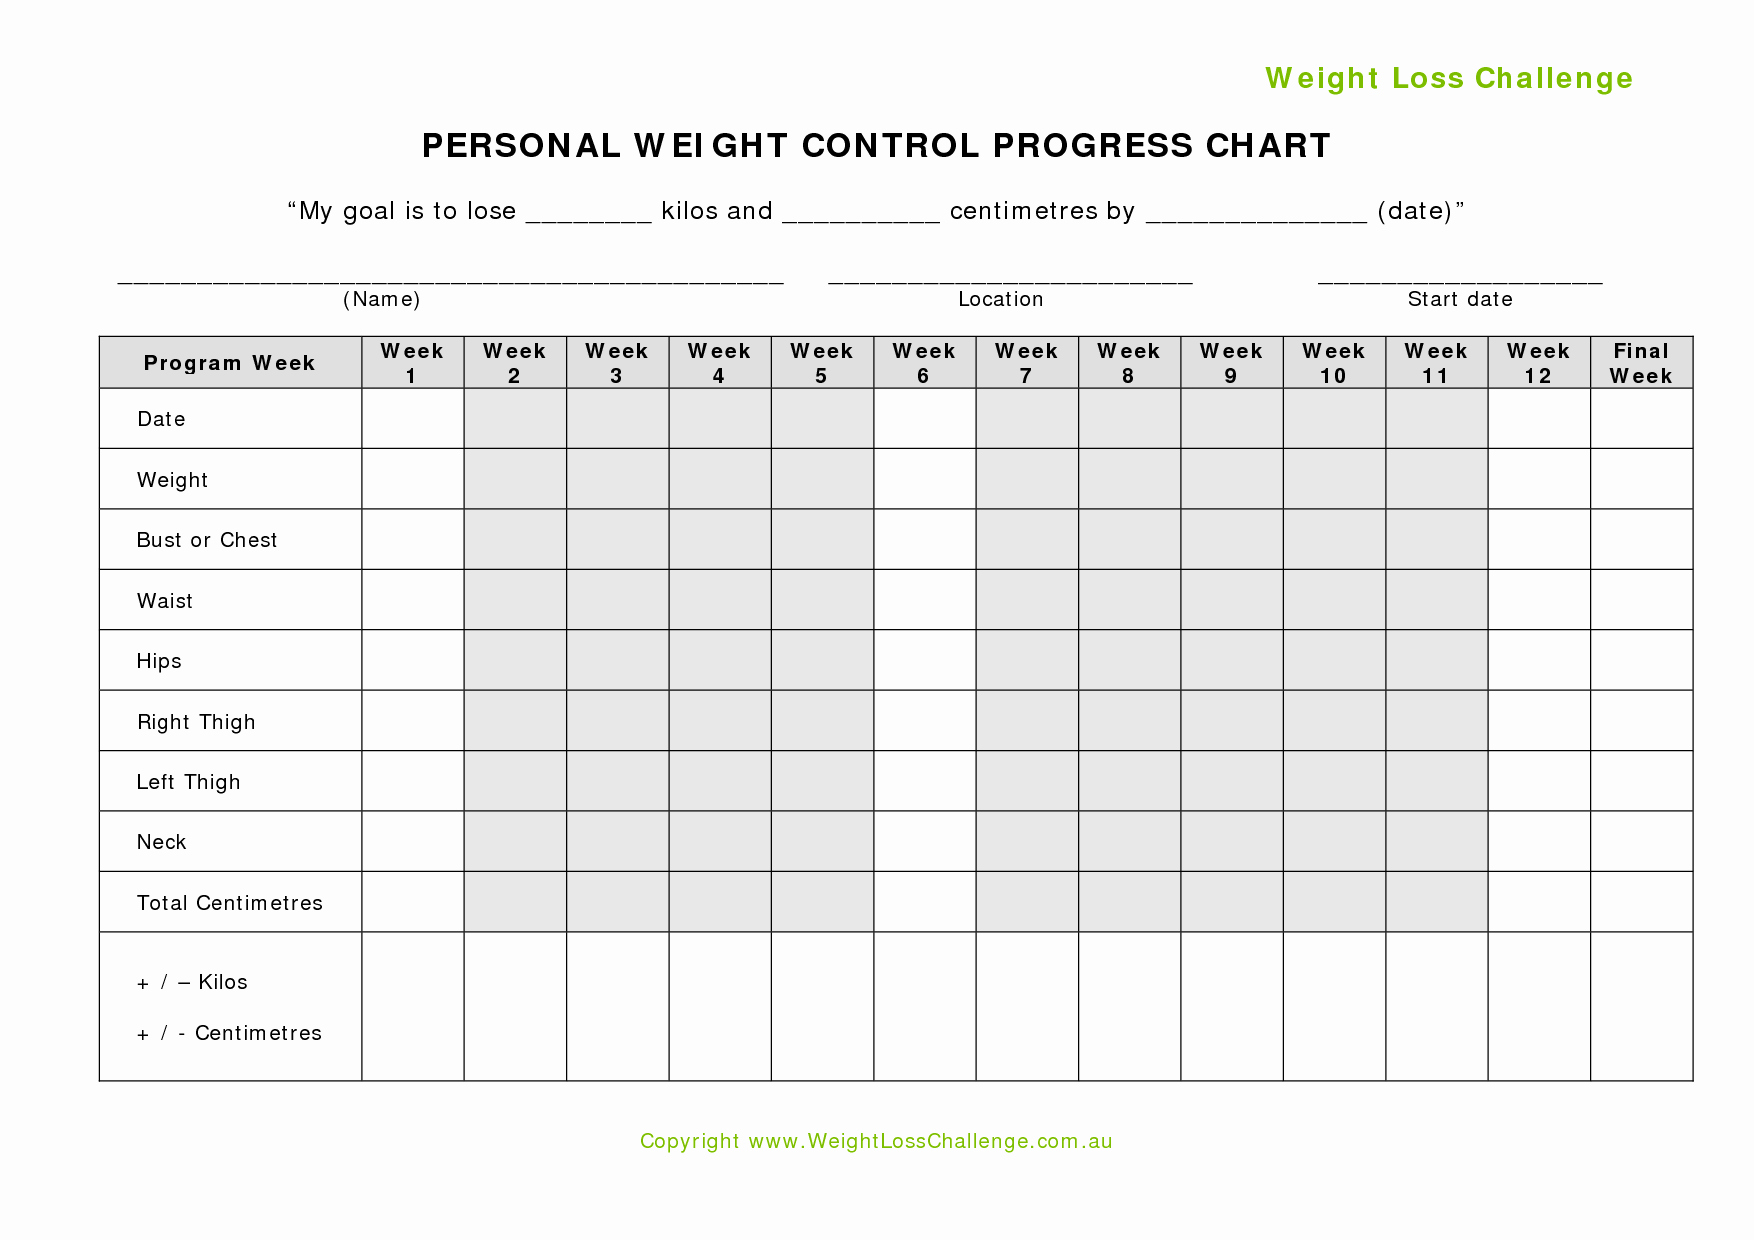 Weight Loss Challenge Chart Template Unique Weight Loss Challenge Chart Google Search